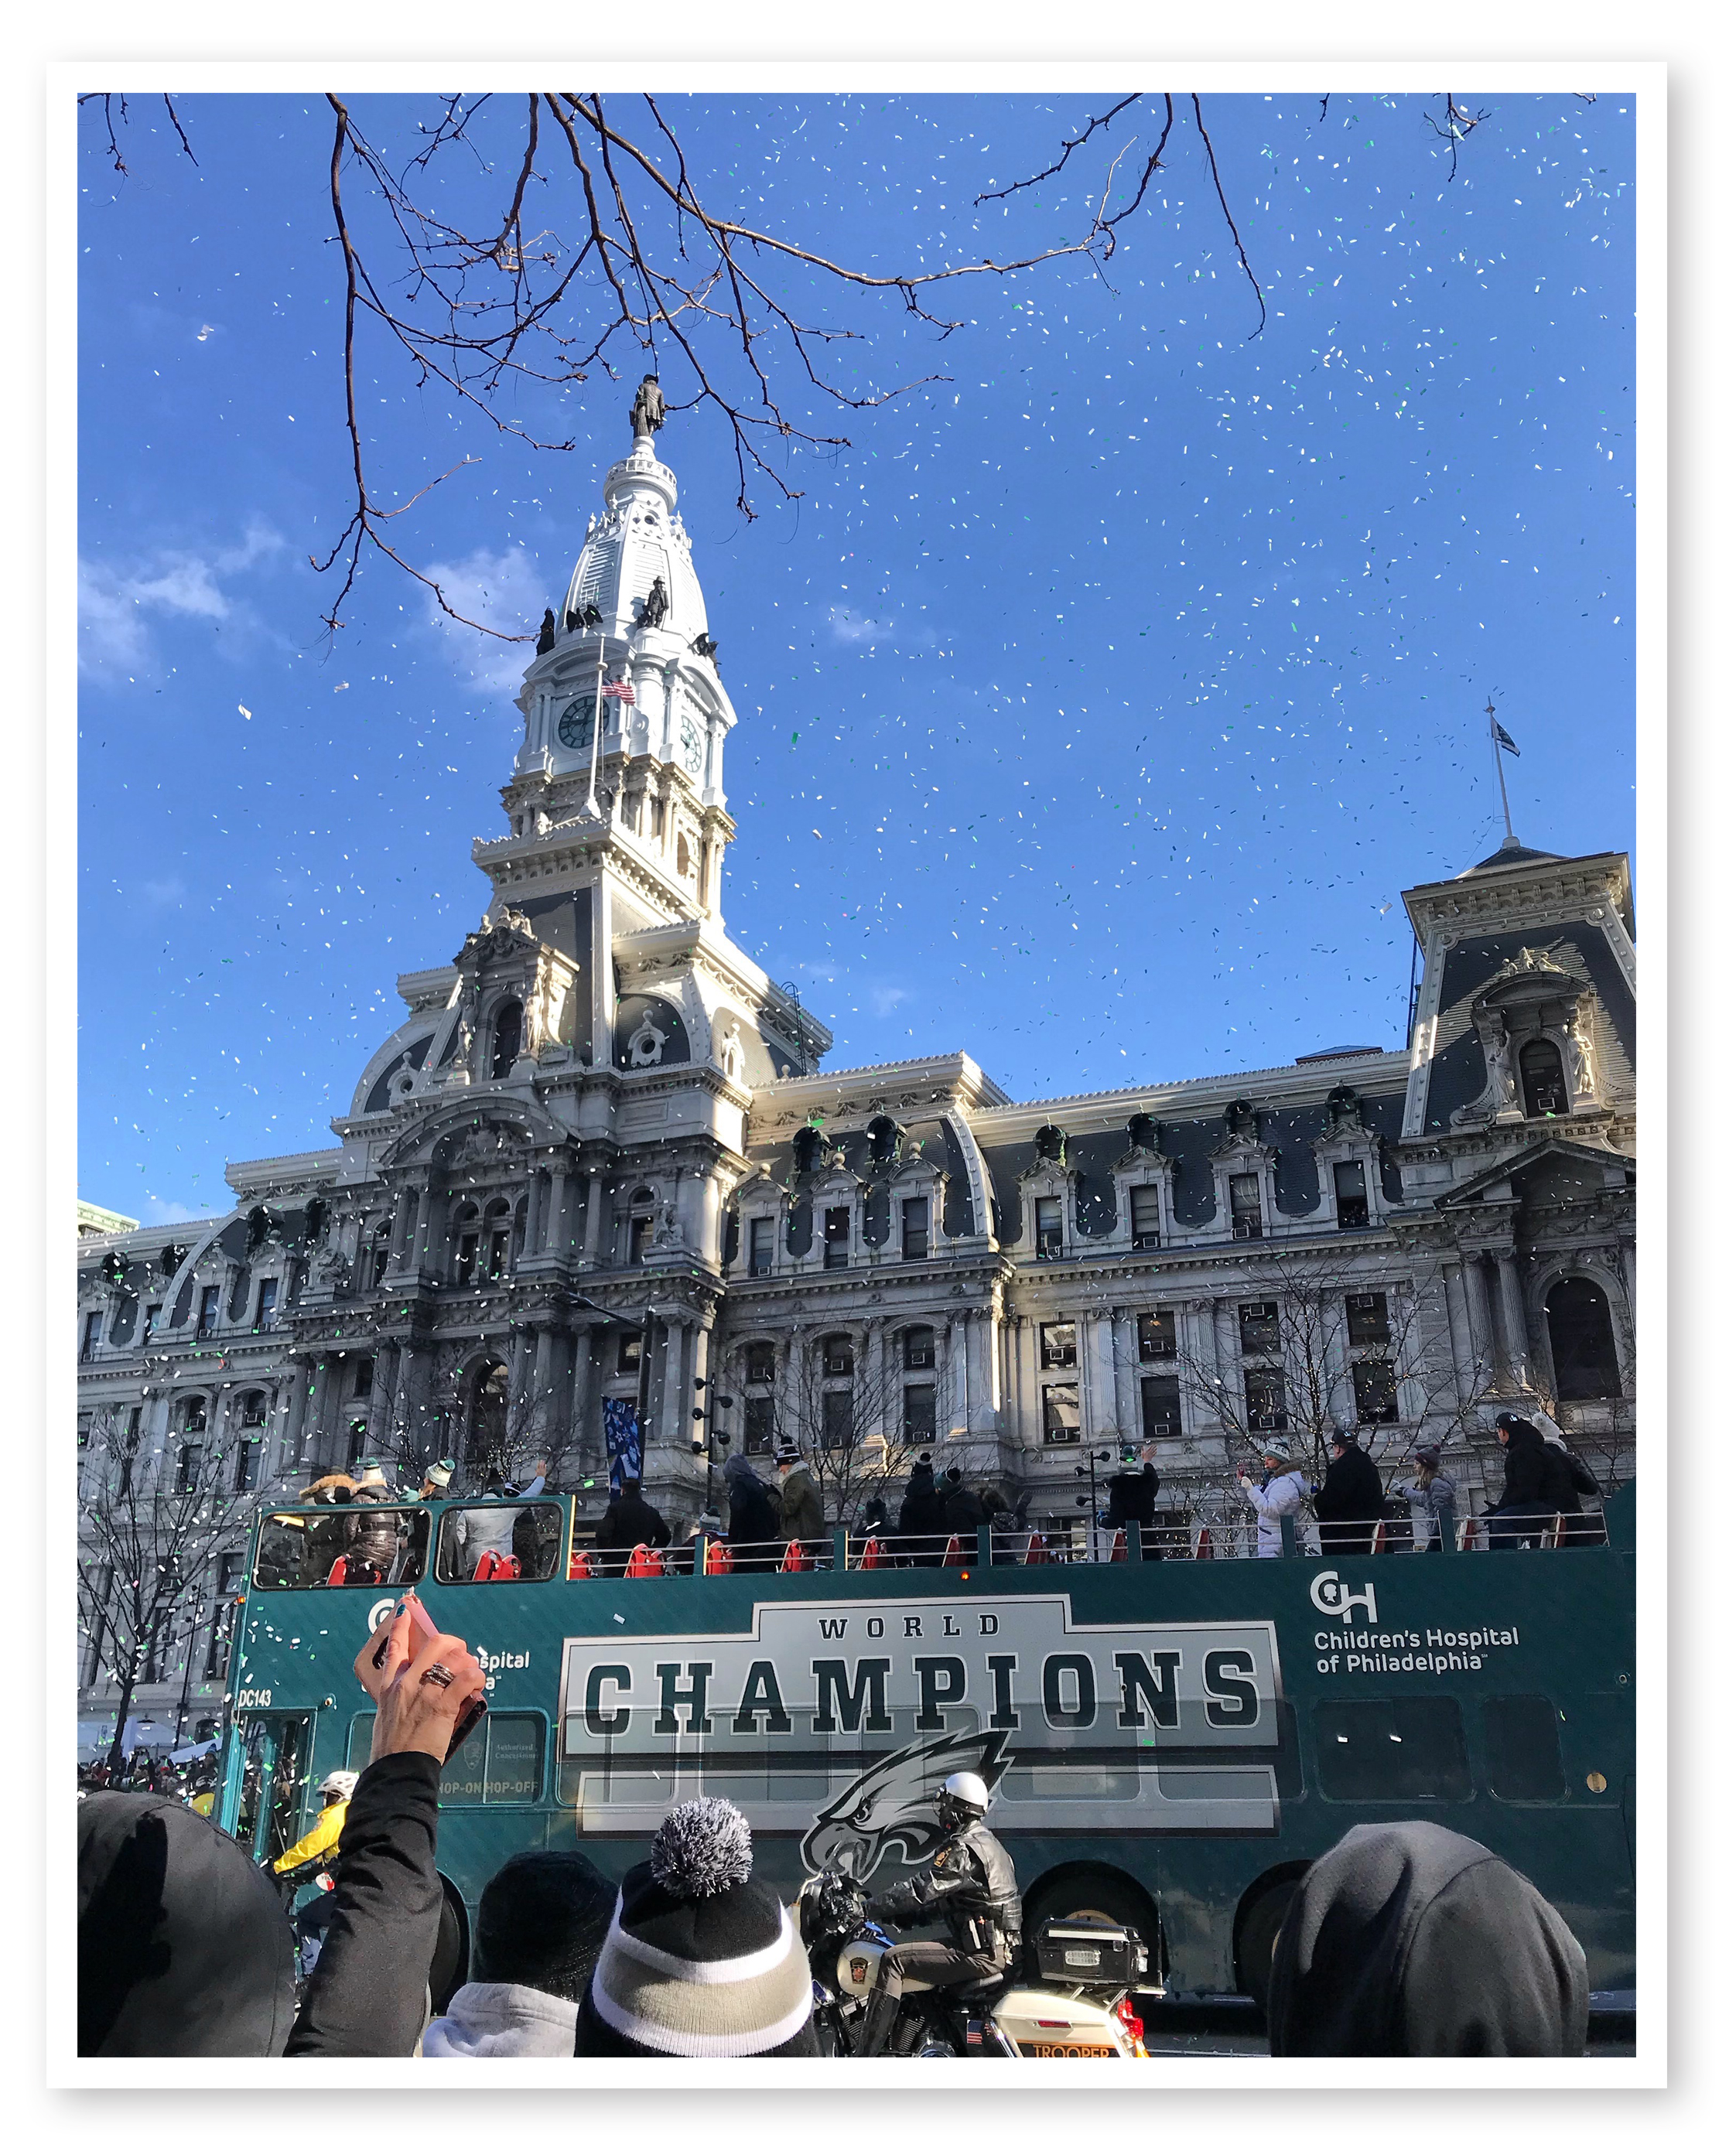 Okay, Circumnavigators, please indulge this writer, a Philadelphia native and long-suffering Eagles fan. This shot of the Super Bowl victory parade was taken by Katie Koontz.